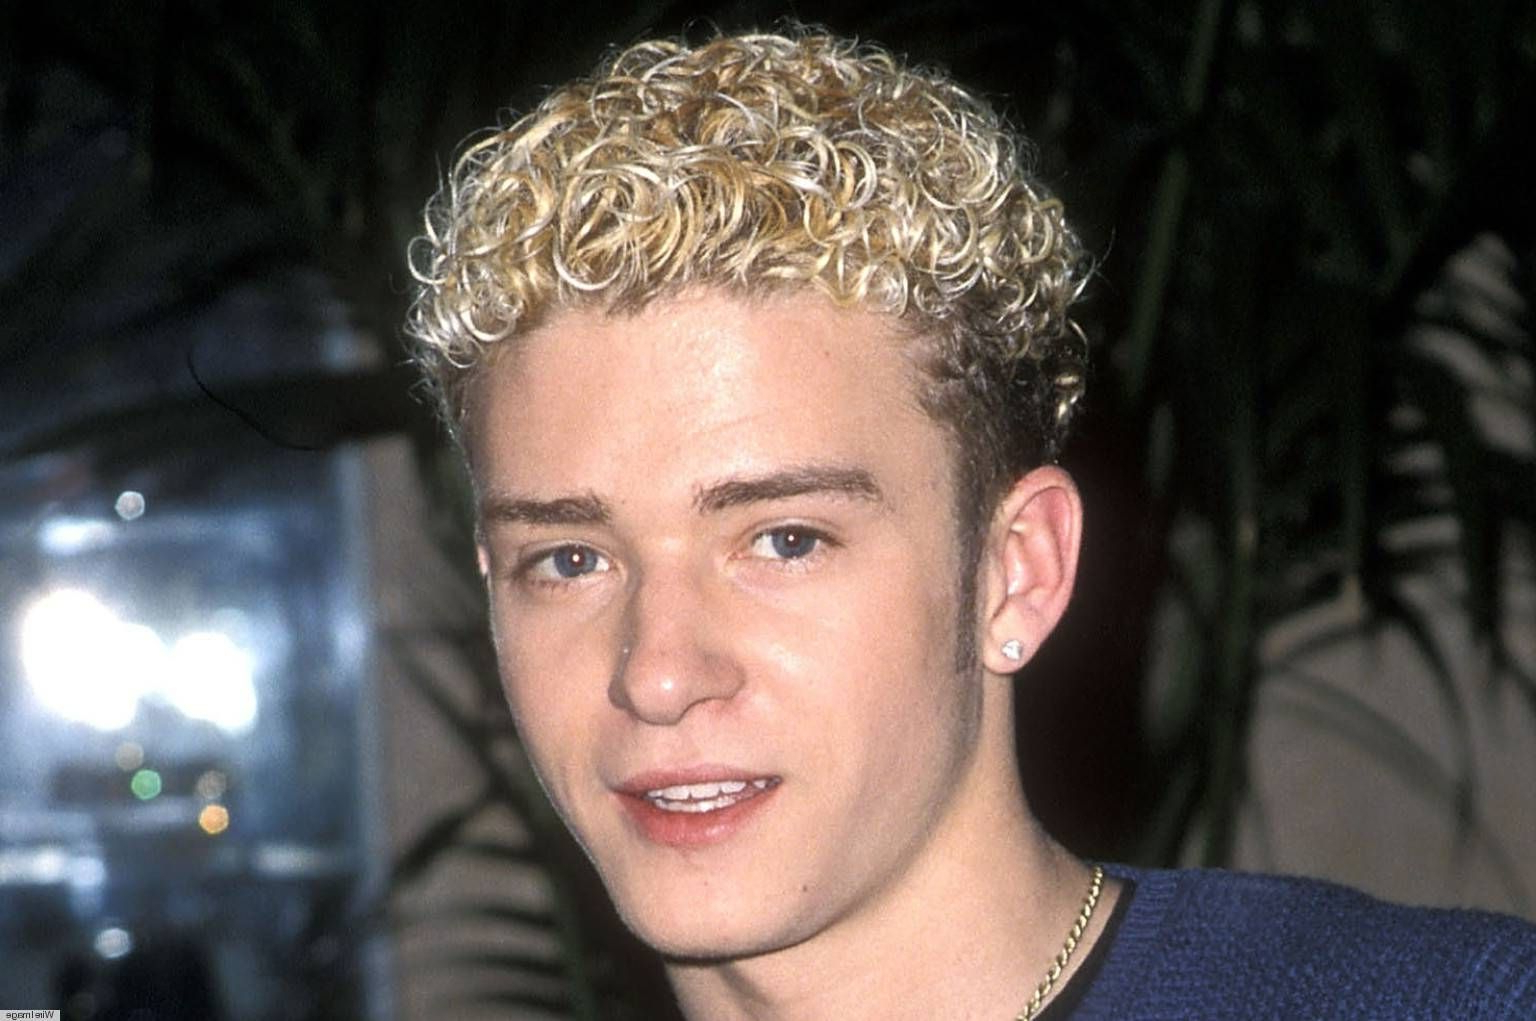 2017 Mohawk Hairstyles With Length And Frosted Tips Intended For Justin Timberlake's Style Evolution From Frosted Tips To Three (View 4 of 20)